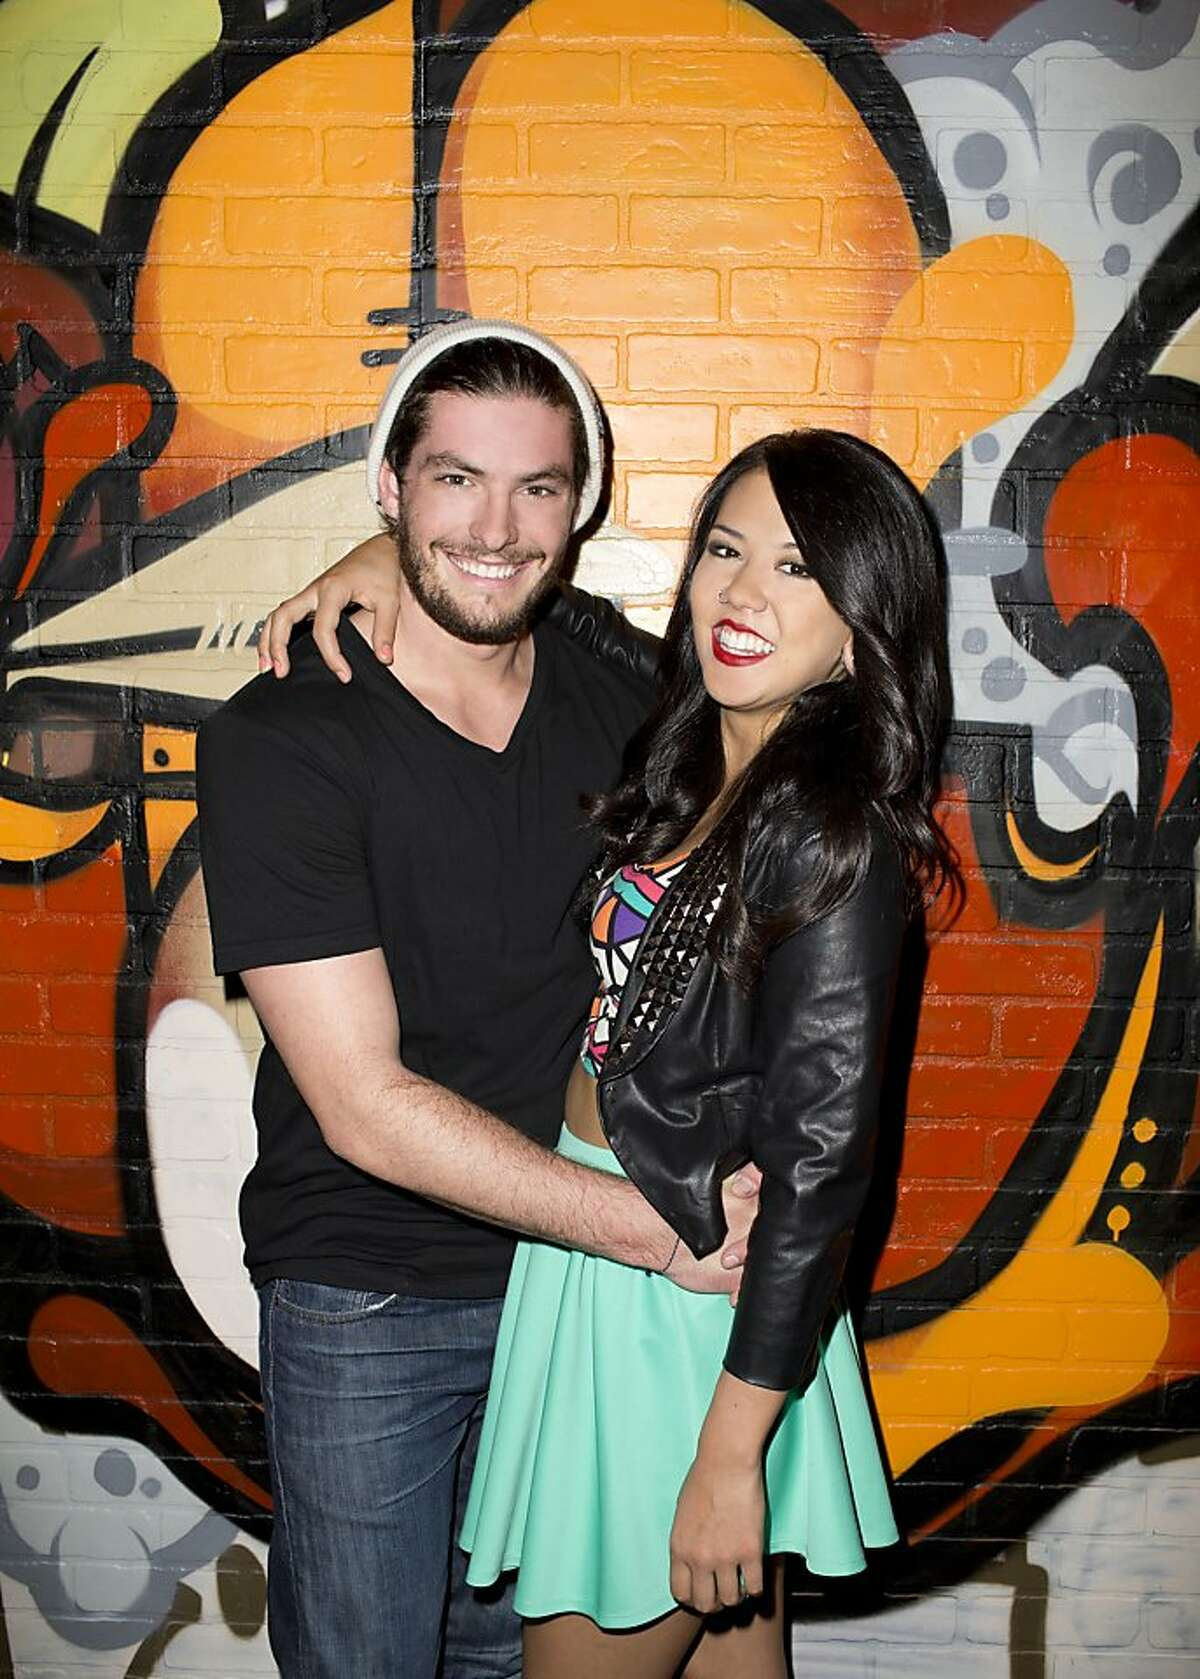 Thomas and Jamie will be in the 29th season premiere of the Real World on MTV is set in San Francisco airing on January 8.